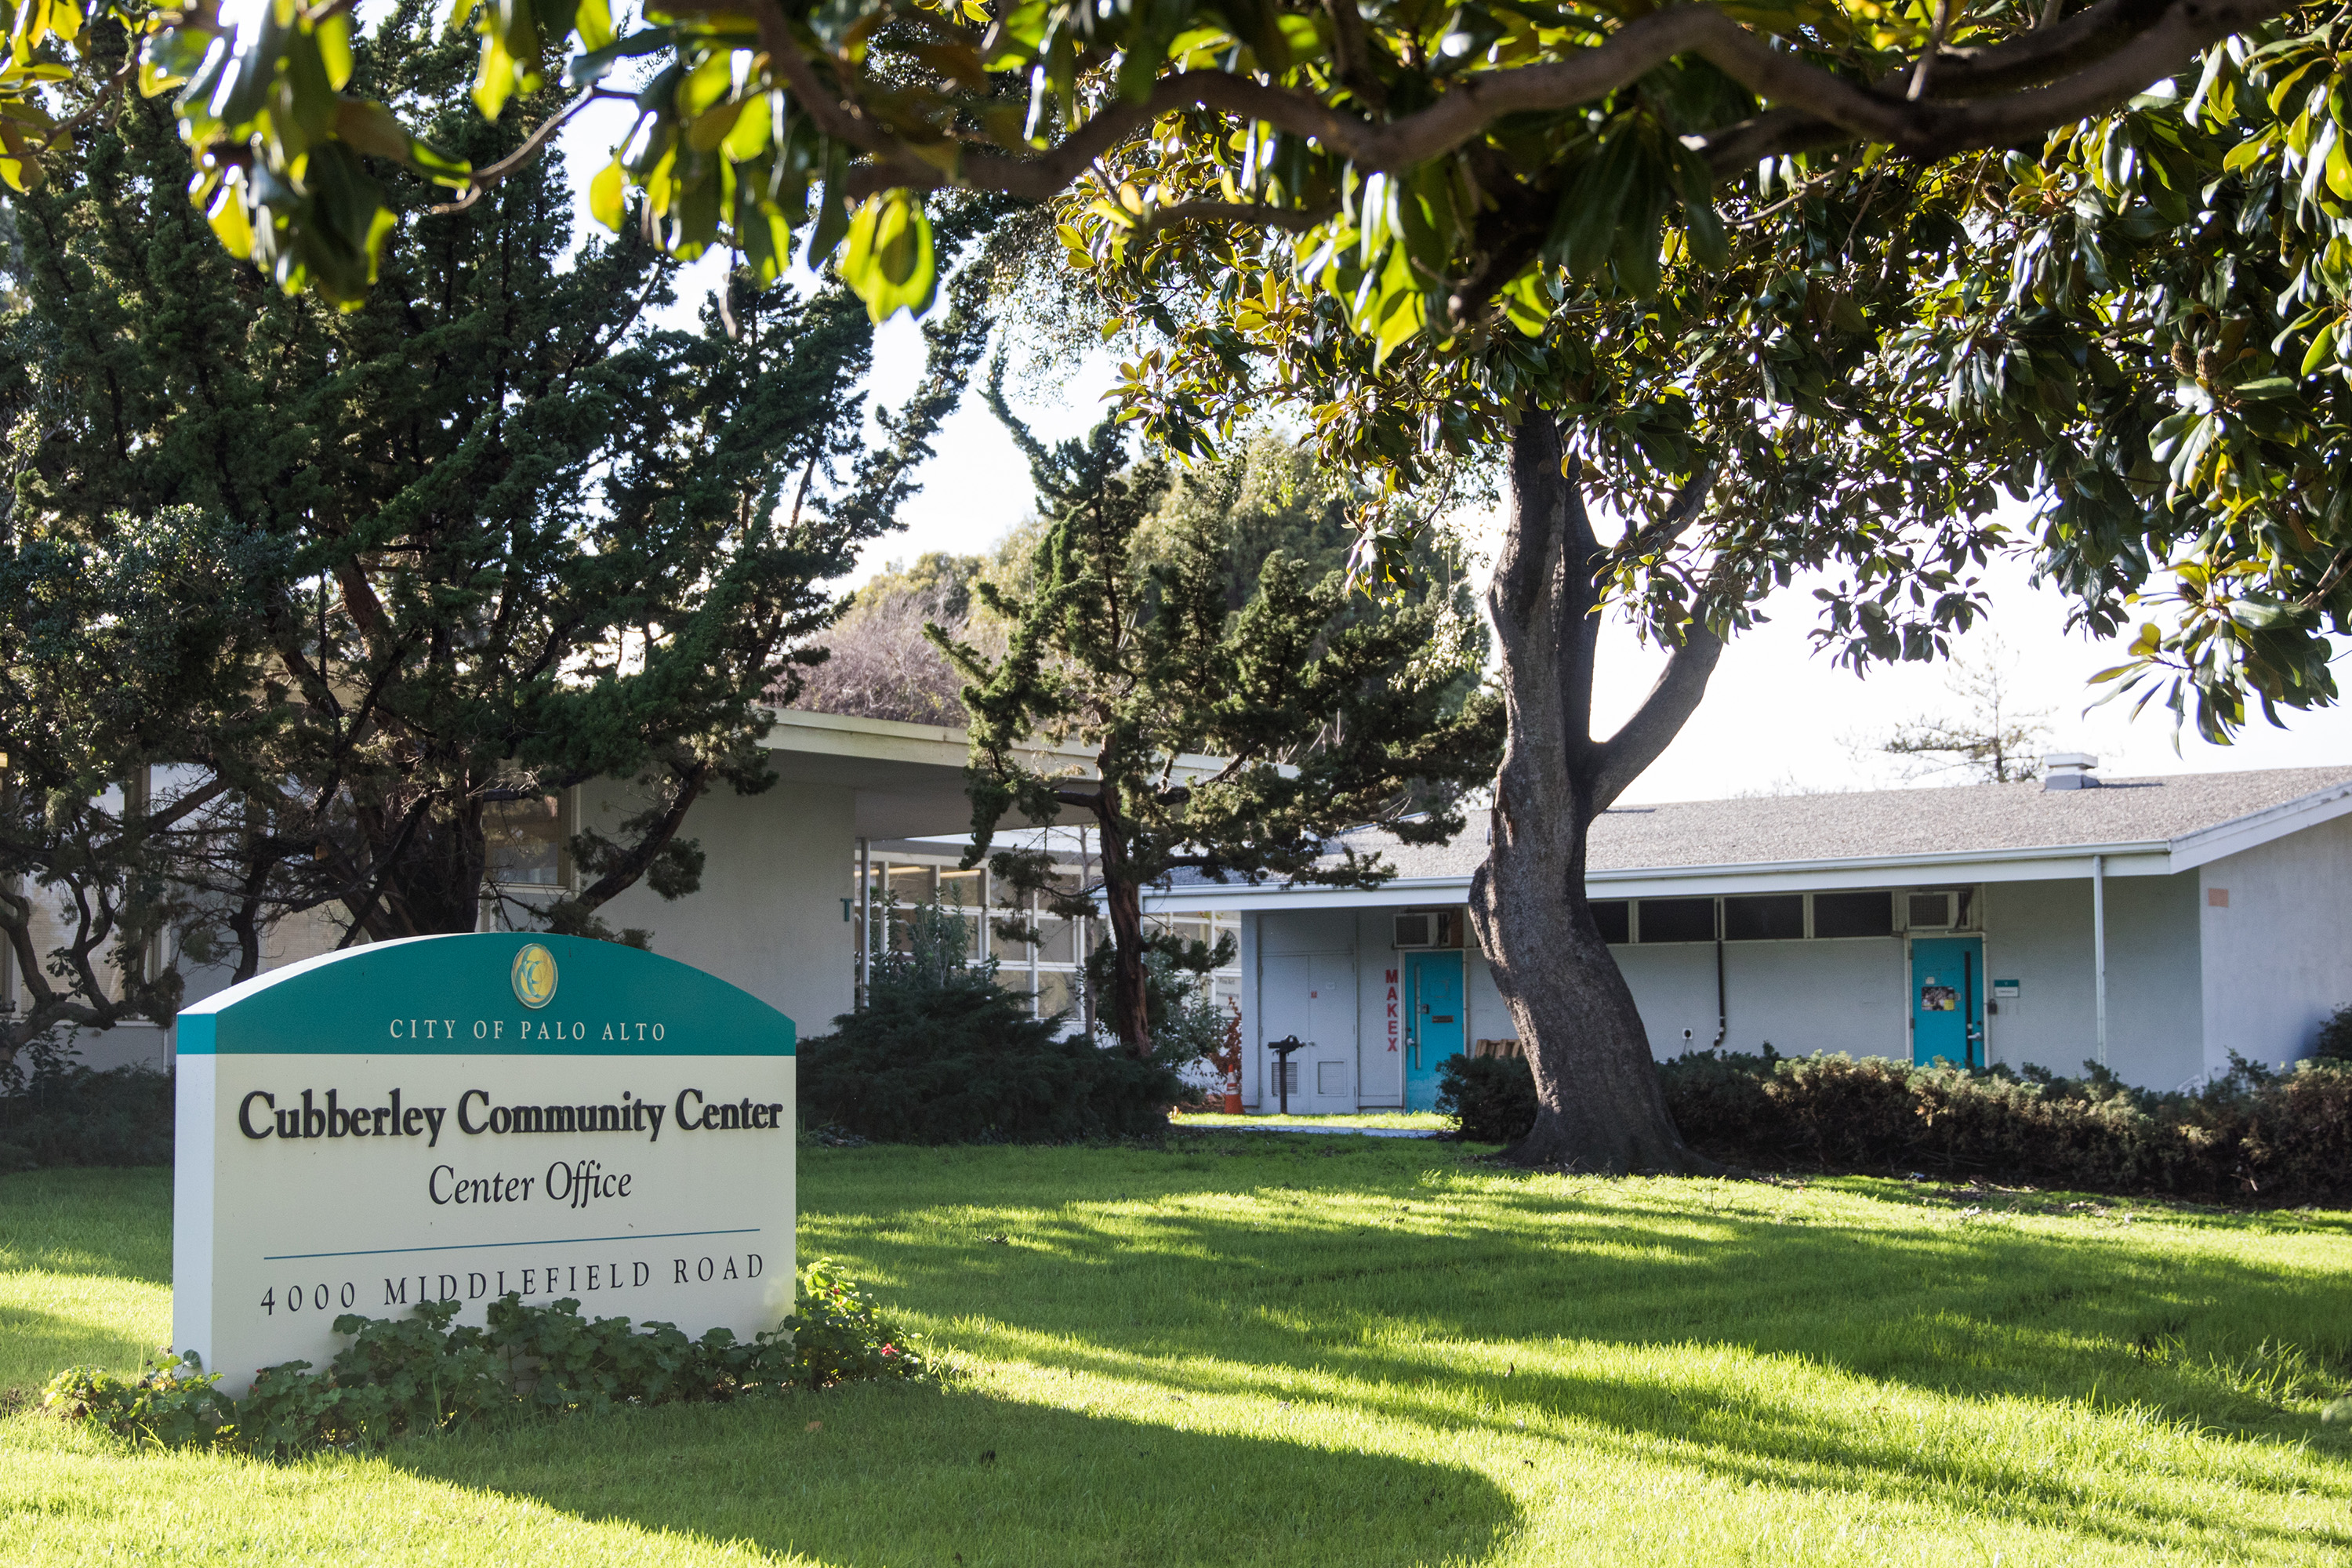 An effort by the city and Palo Alto school district to develop a master plan for Cubberley Community Center hit numerous obstacles this year. Photo by Veronica Weber.